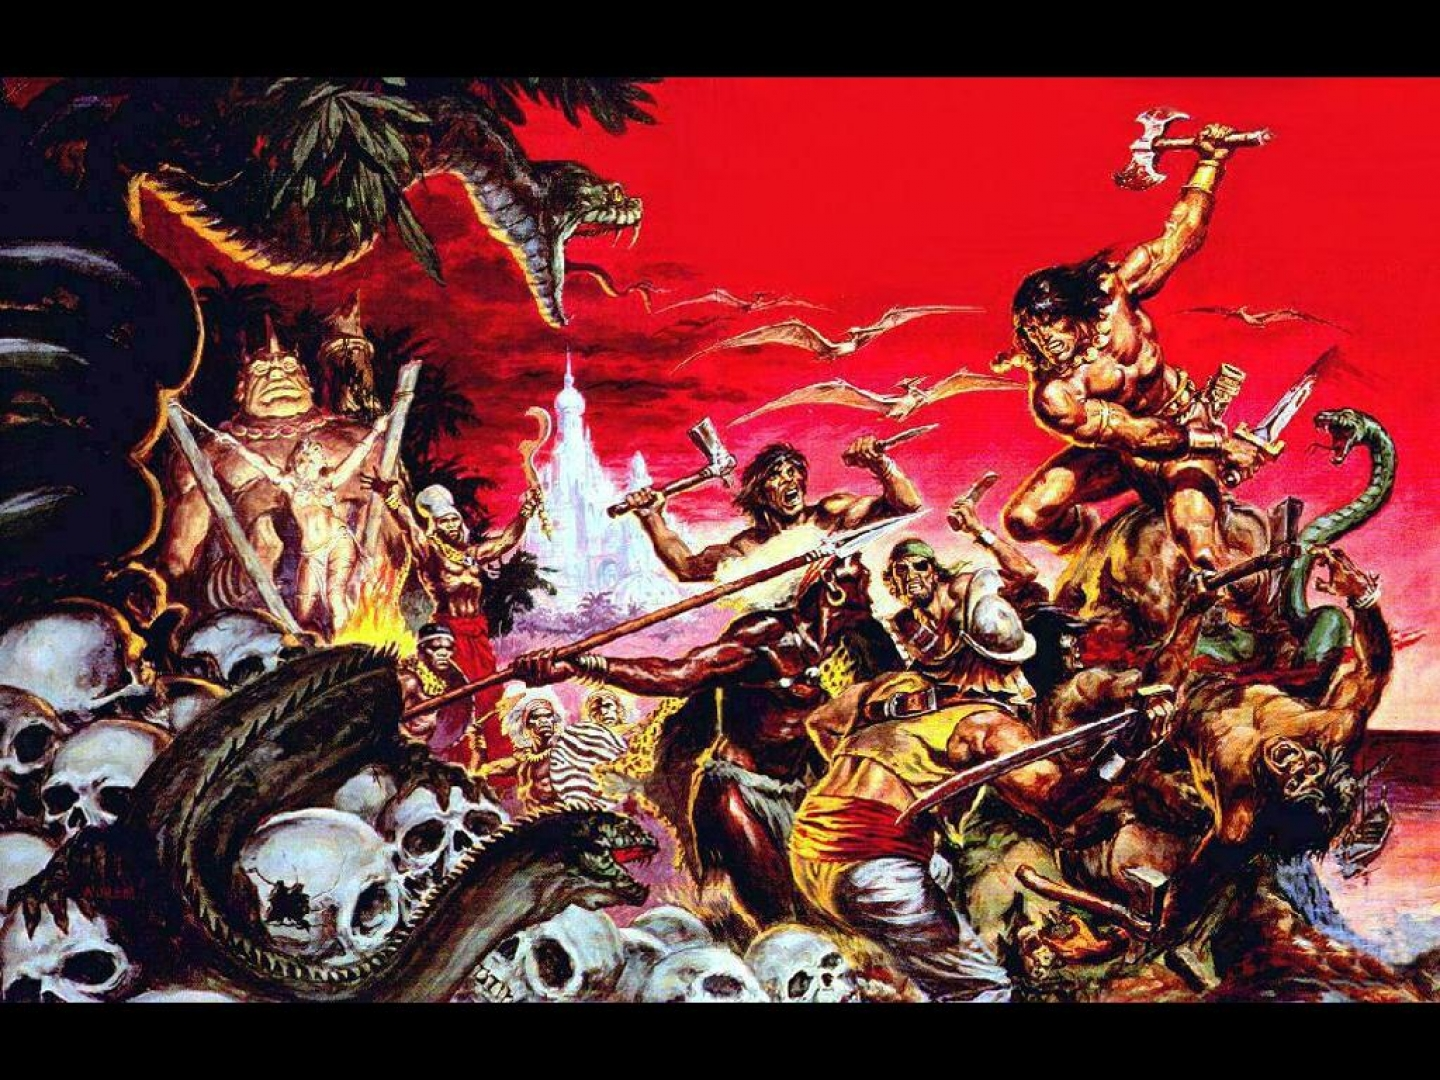 conan the barbarian Computer Wallpapers Desktop 1440x1080